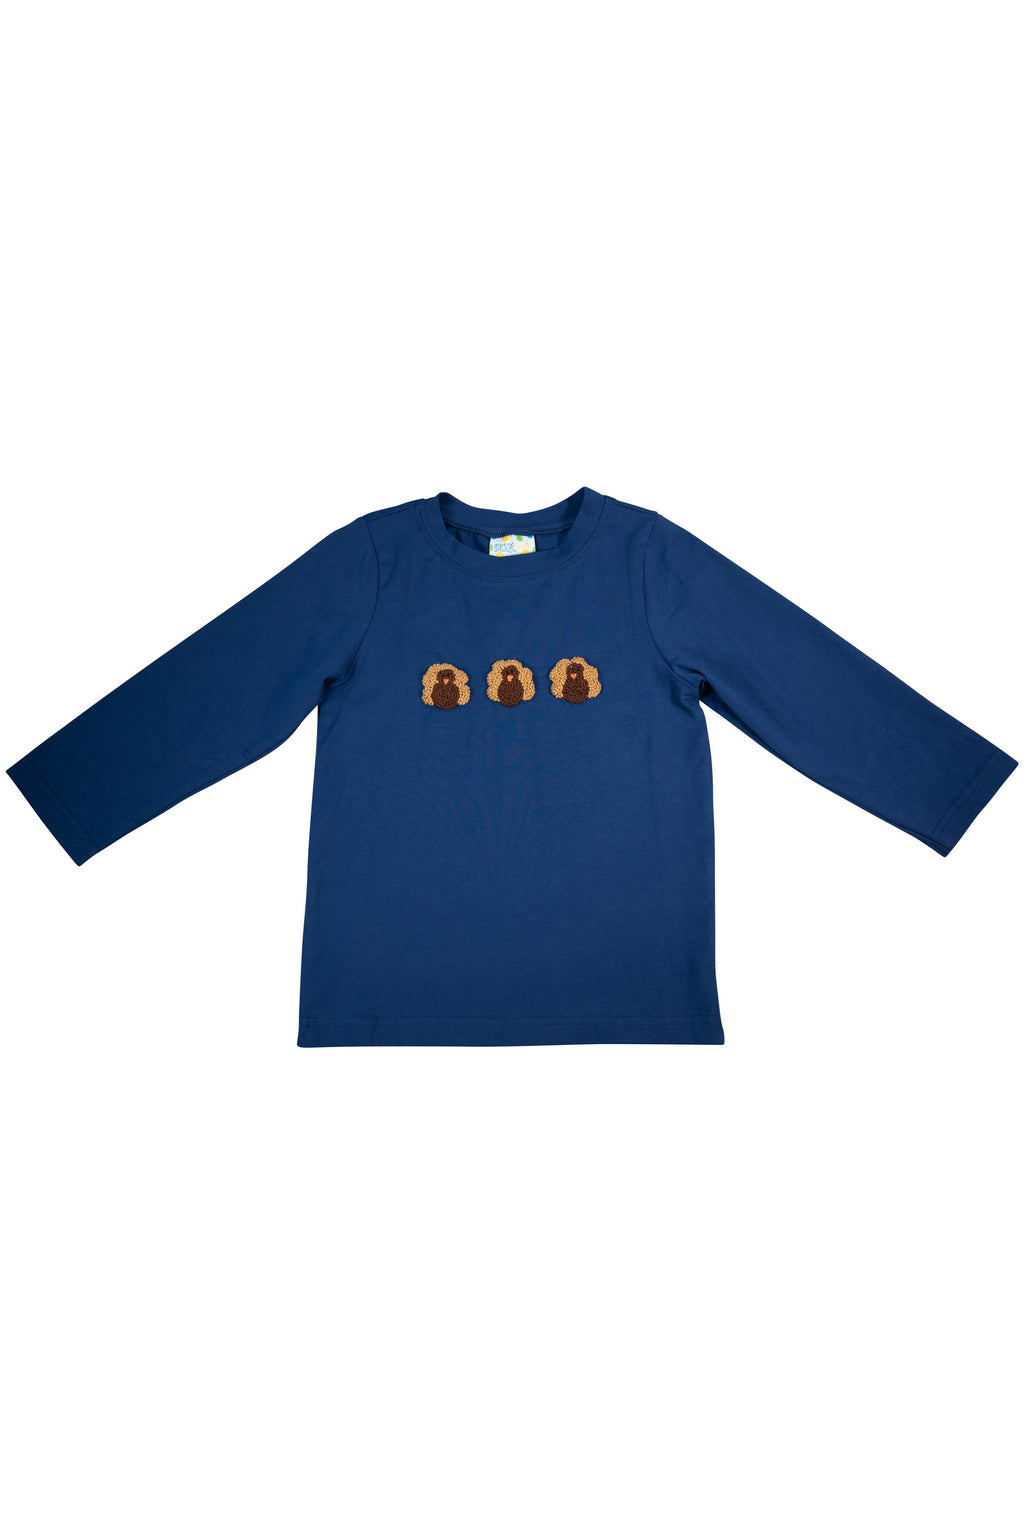 Boys Navy Holiday Shirt Only